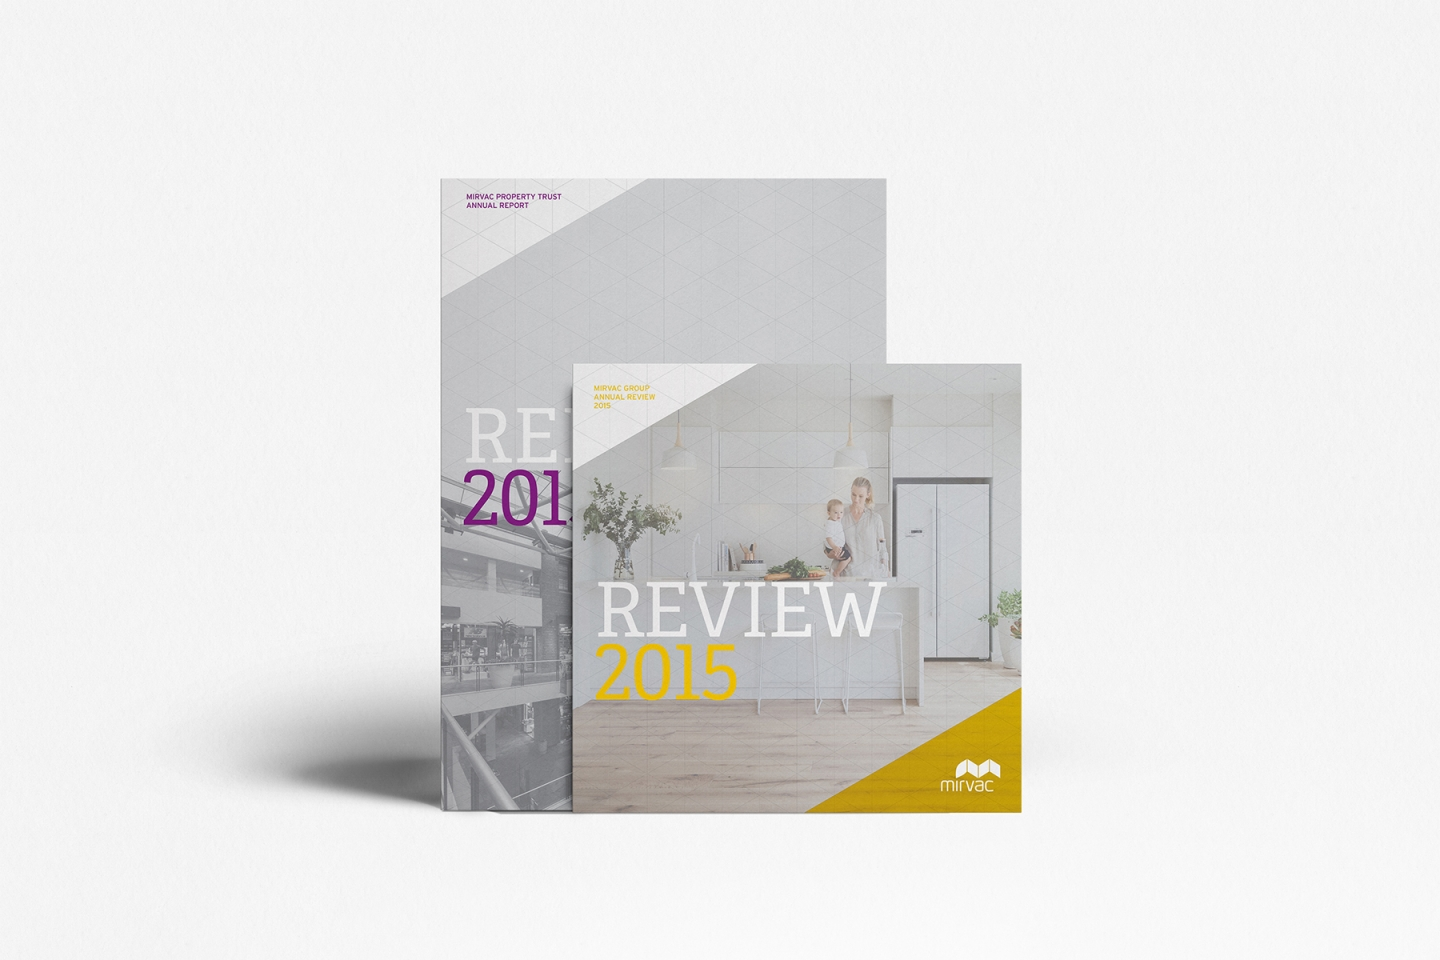 Mirvac: Annual Report + Review 2015